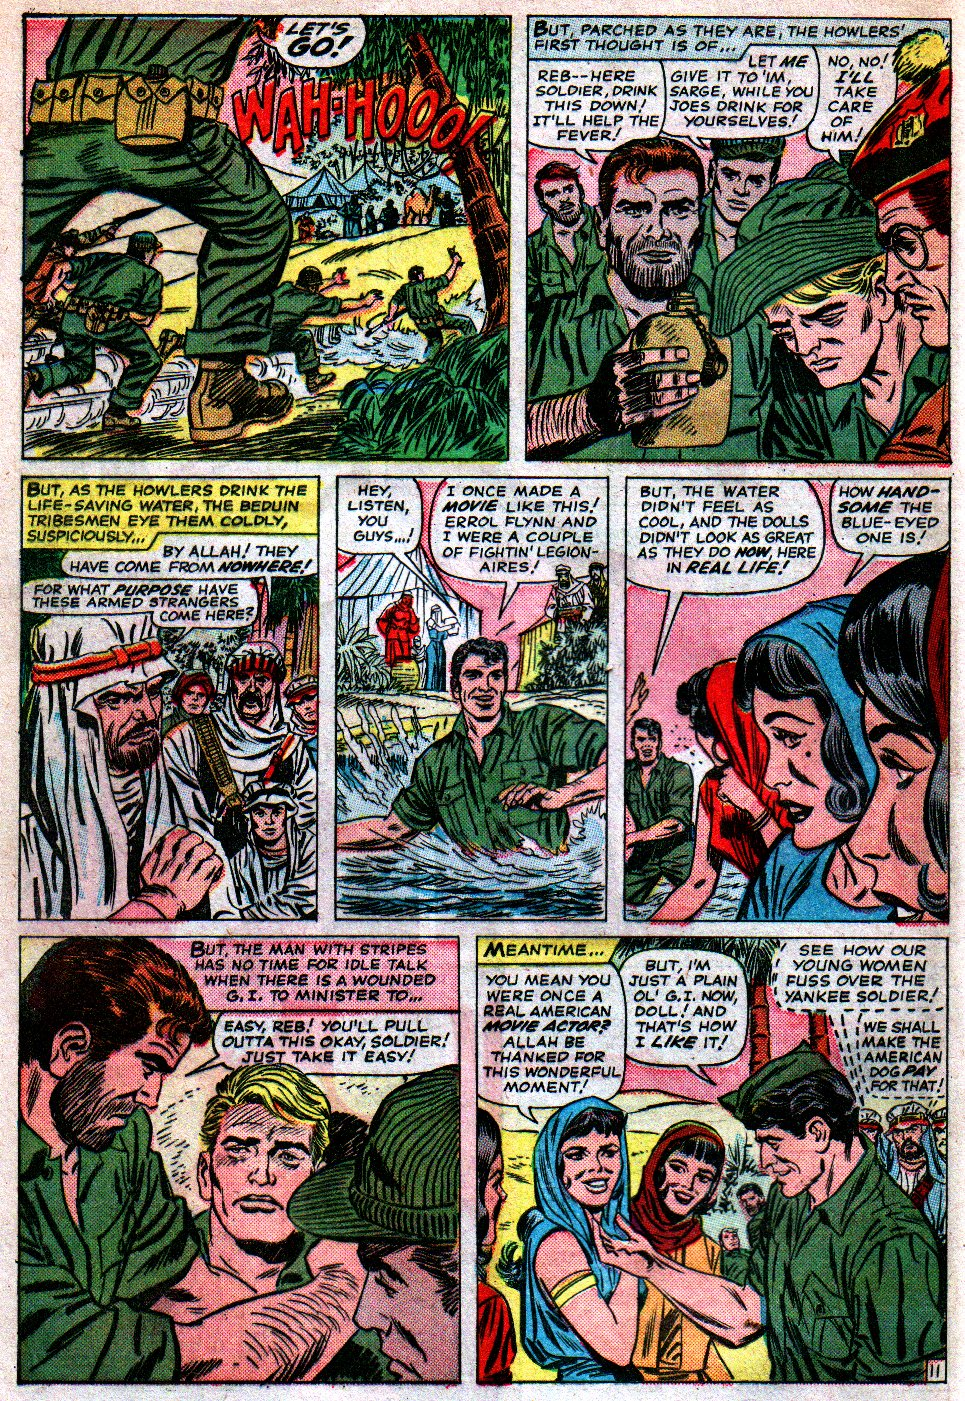 Read online Sgt. Fury comic -  Issue #16 - 16